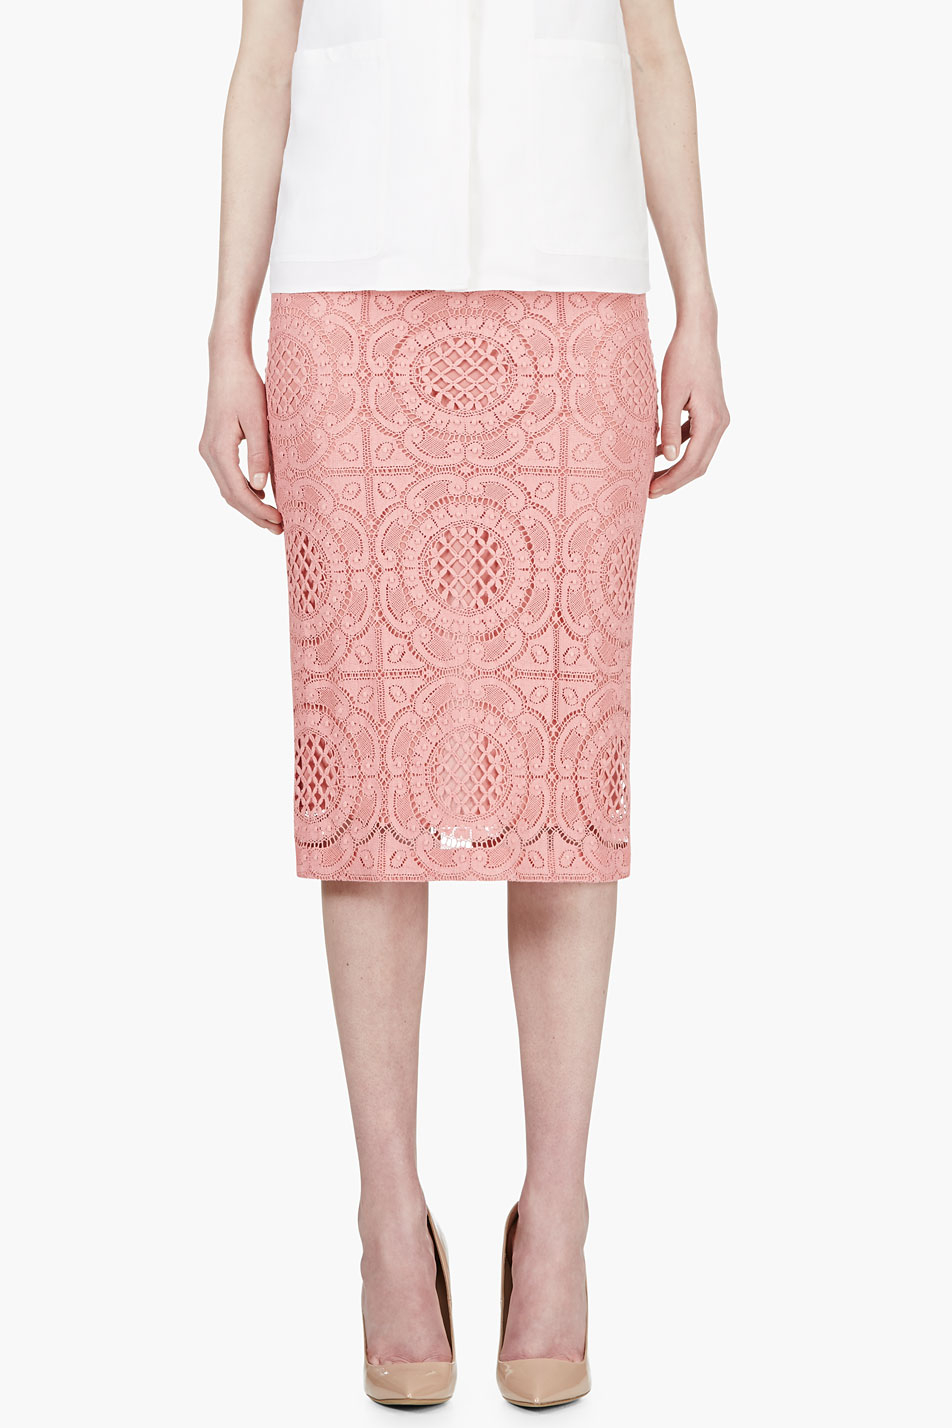 Burberry Prorsum Pink Lace Overlay Pencil Skirt in Pink | Lyst